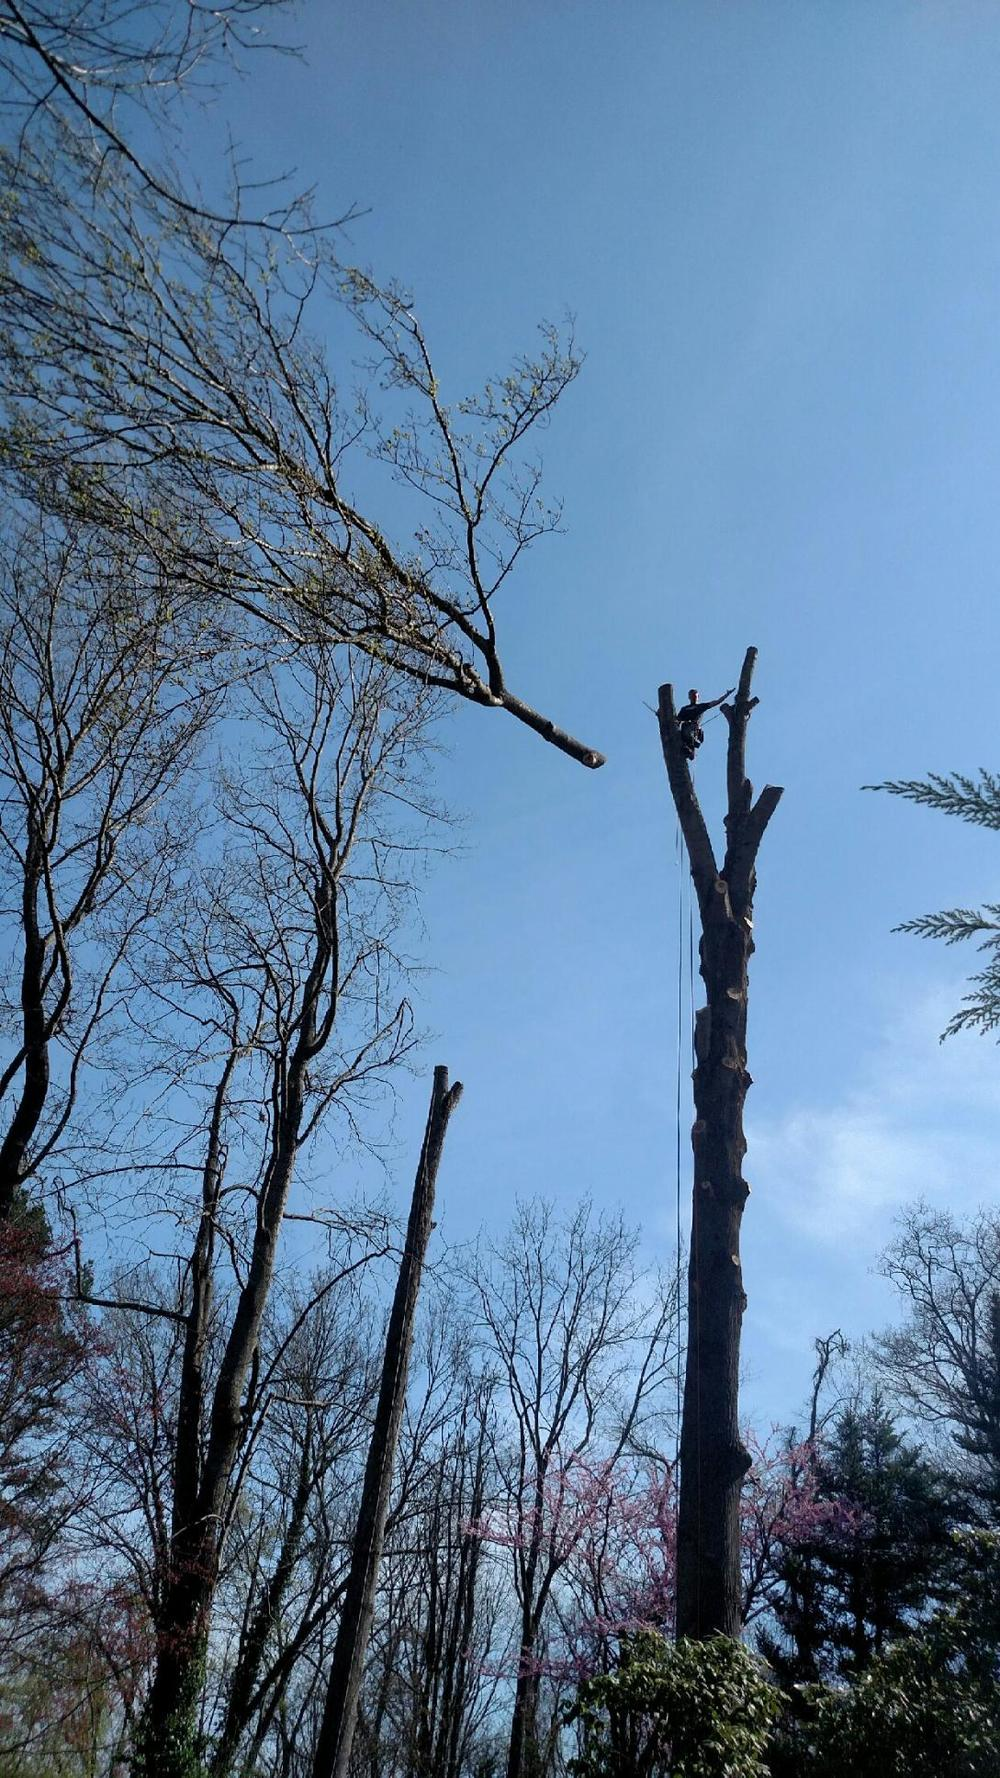 tree-removal-large-tree.JPG